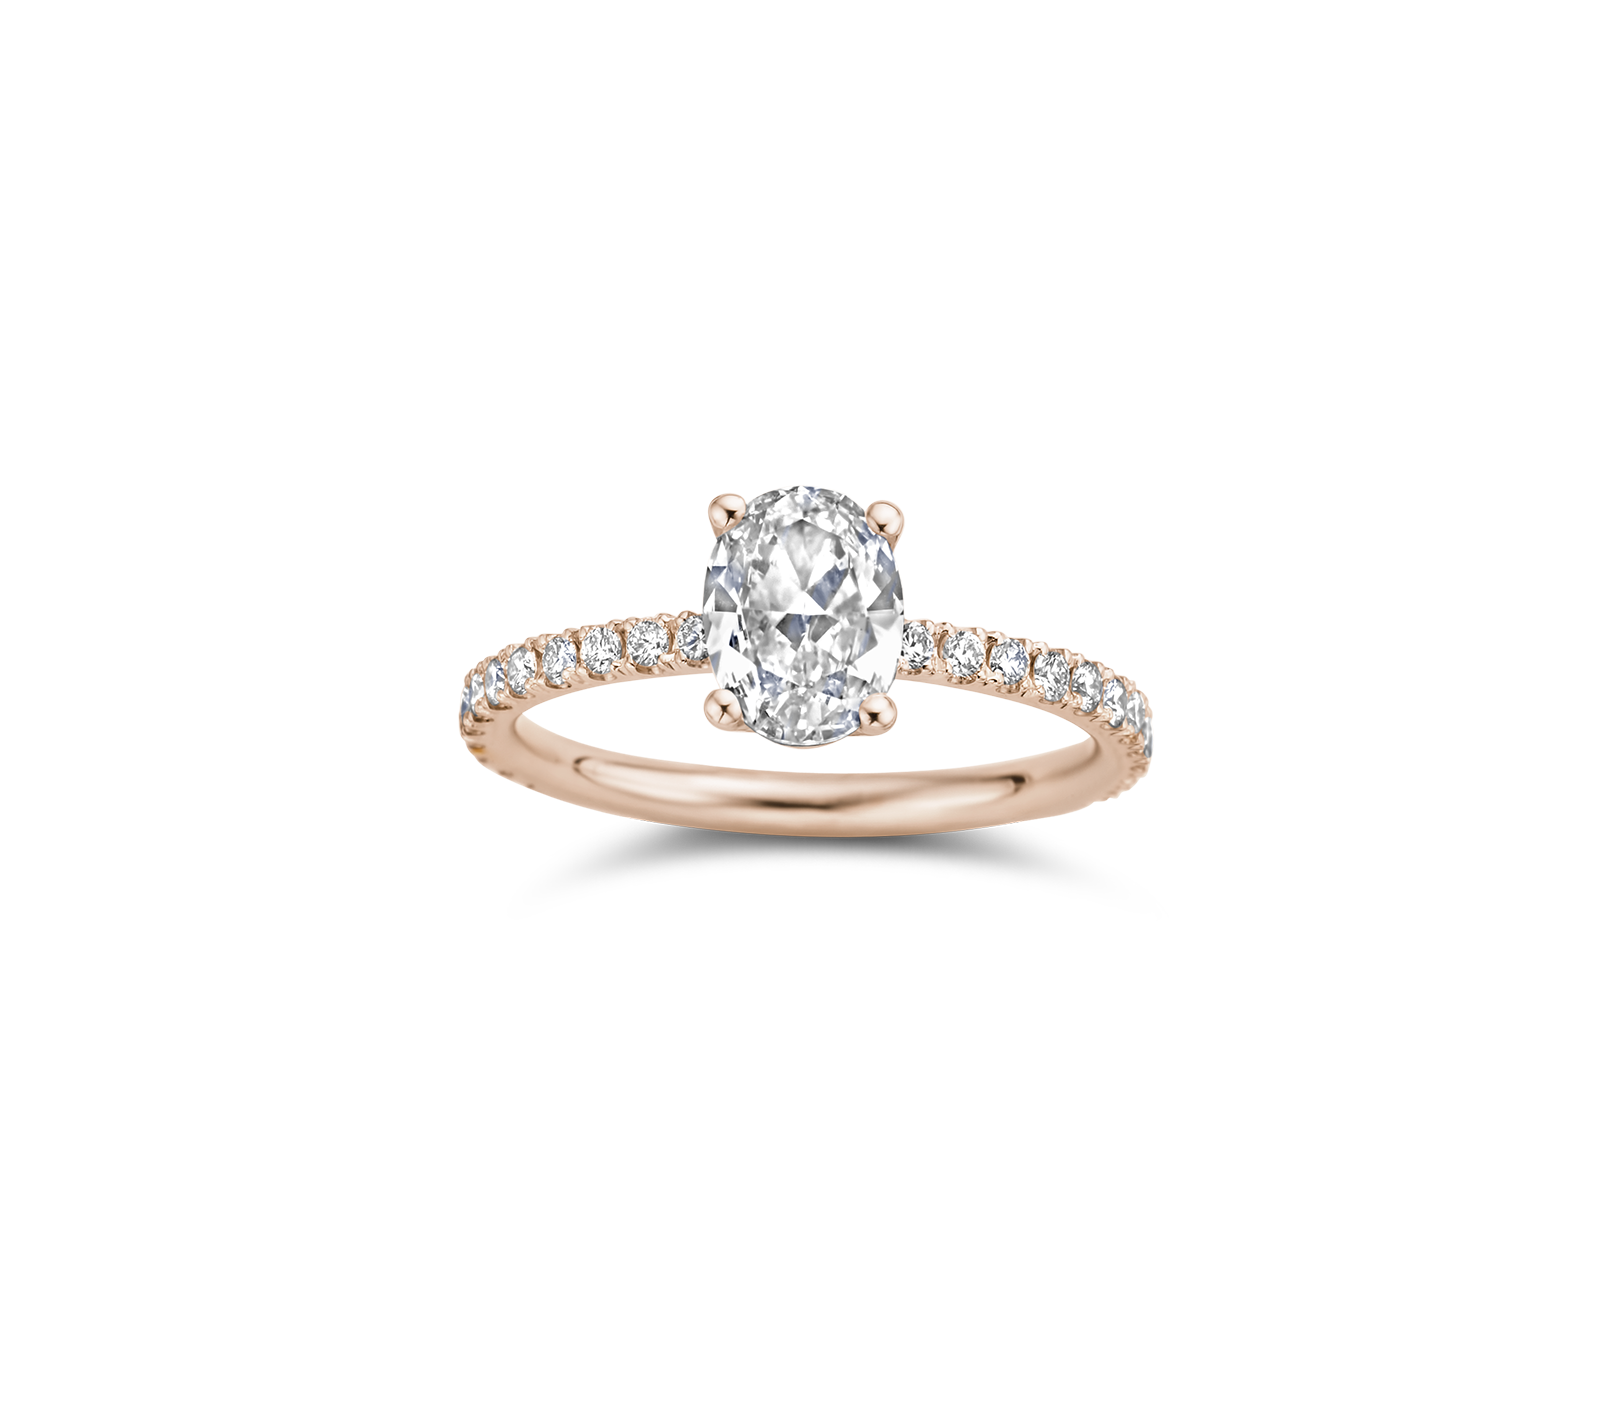 Maya engagement ring packshot - rose gold